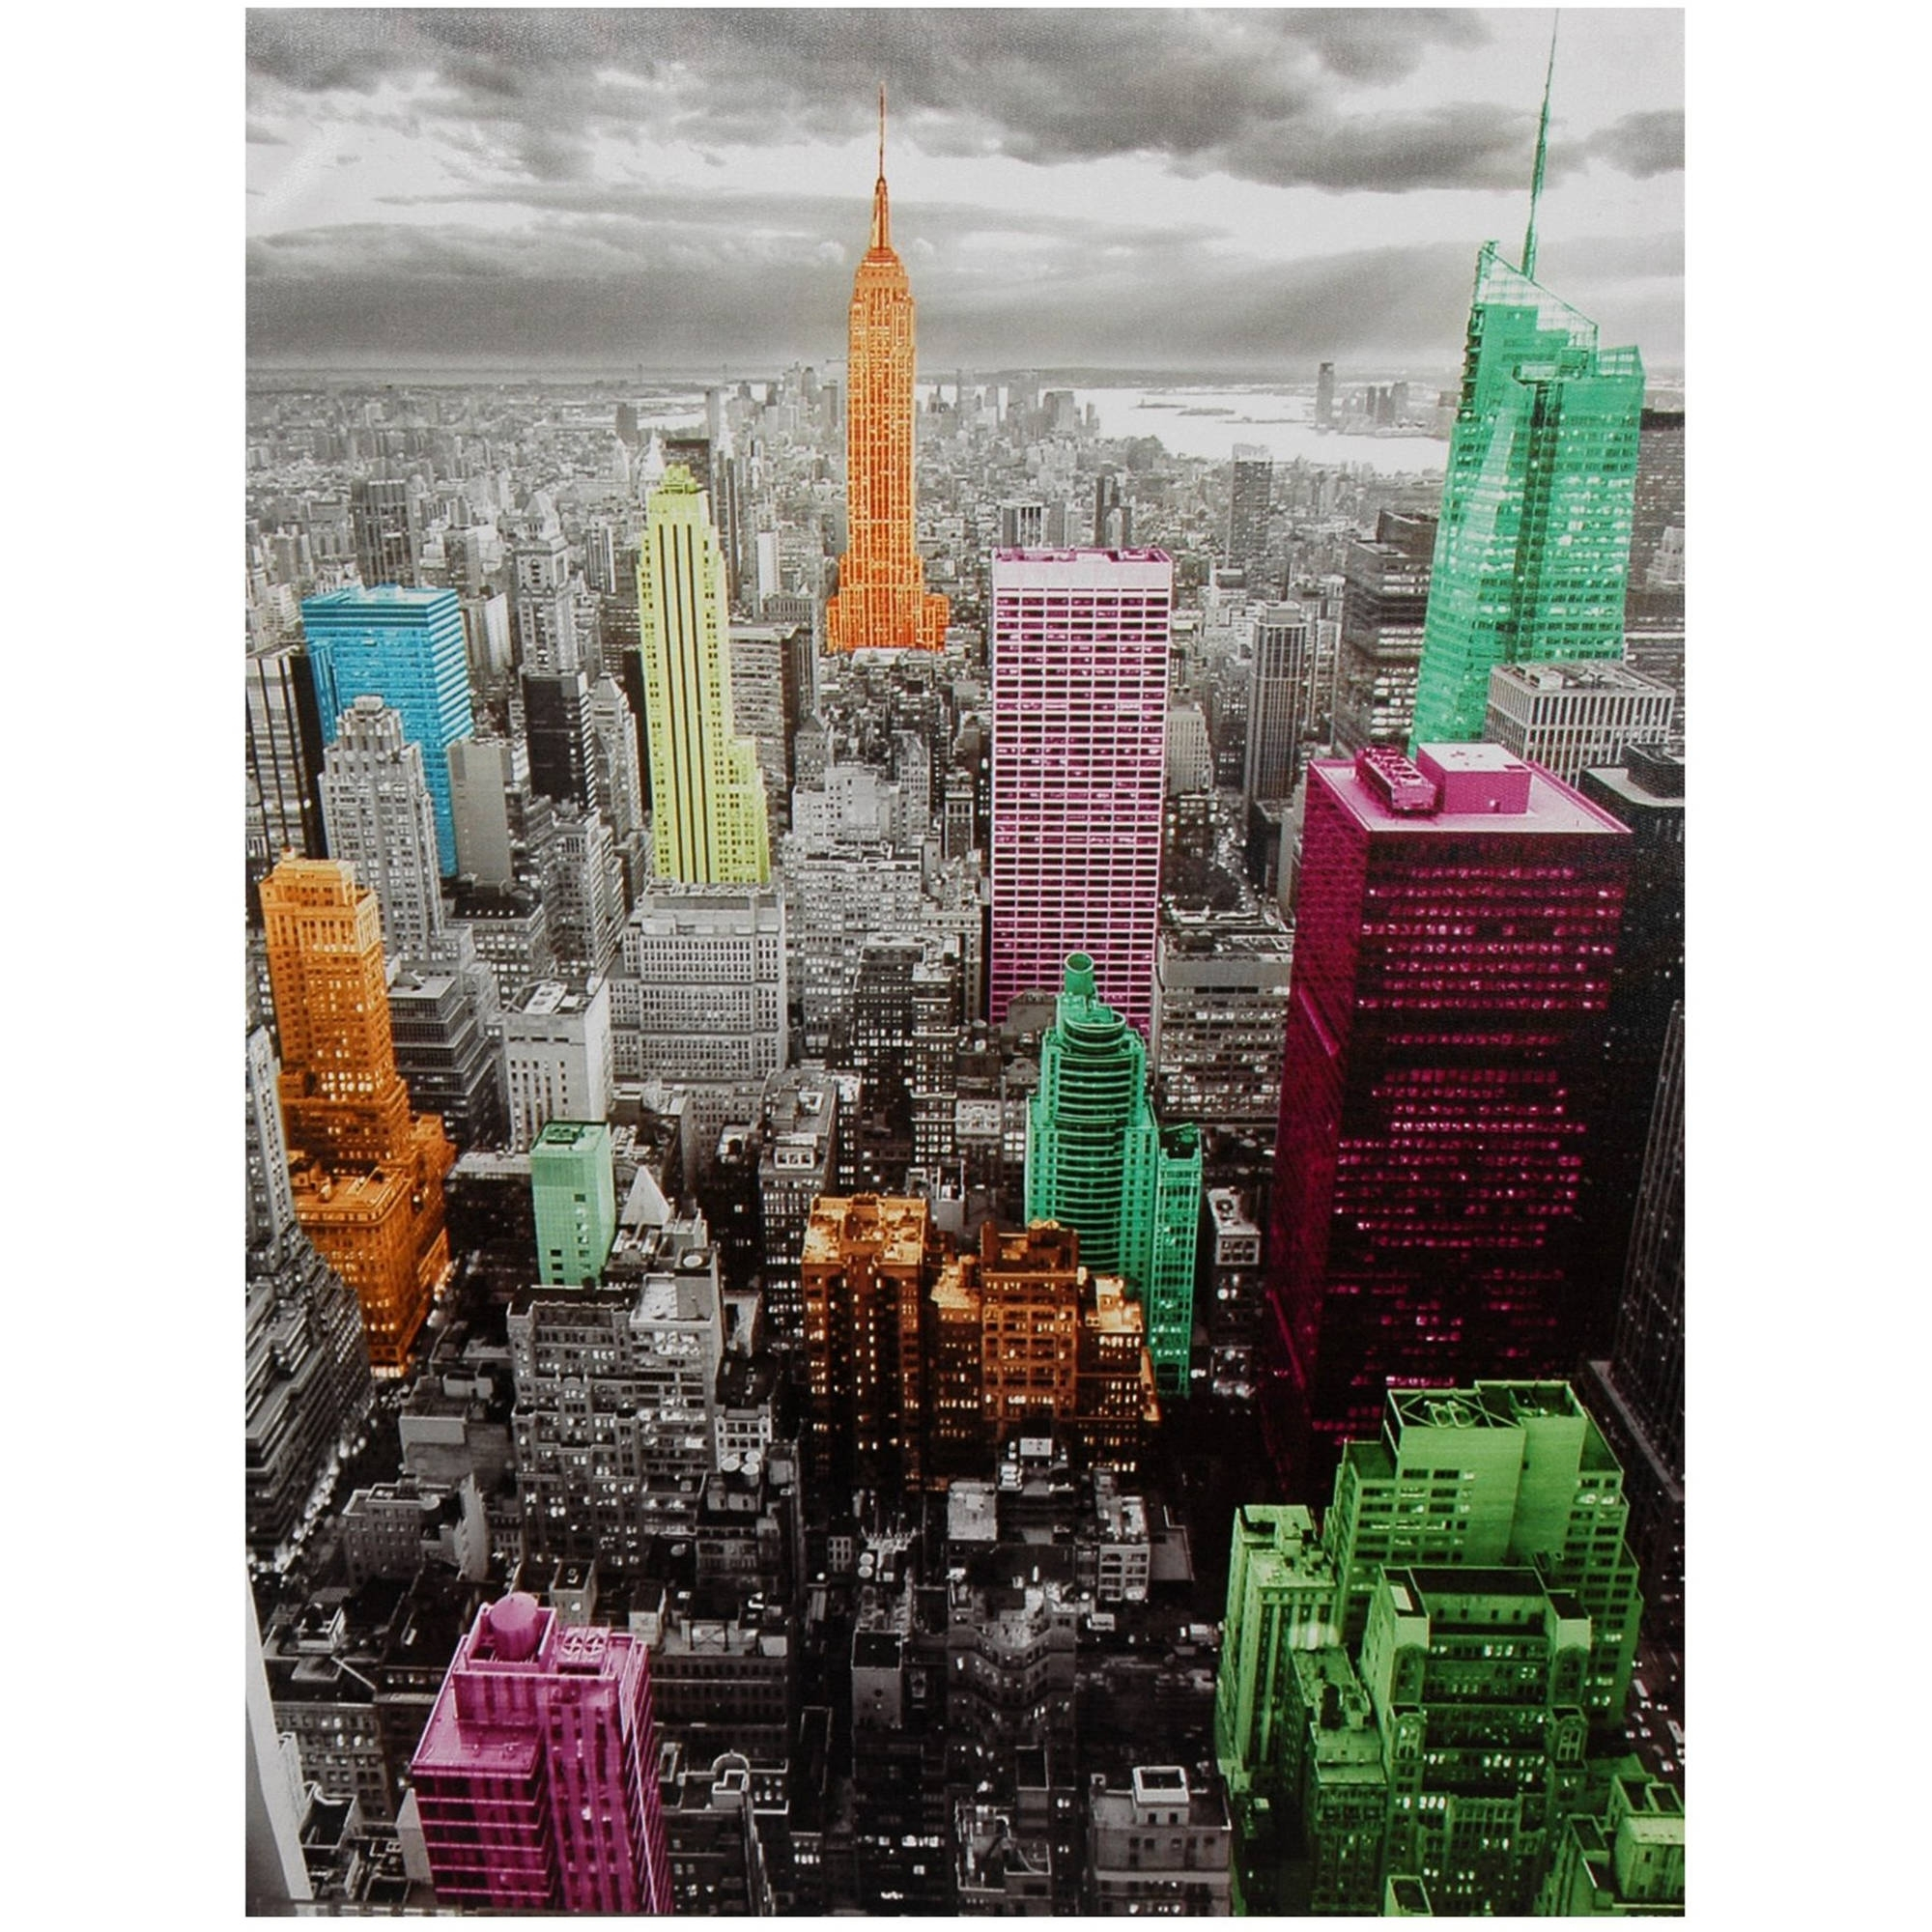 High Lights Of New York Skyline Canvas Wall Art – Walmart Within Best And Newest Nyc Wall Art (View 6 of 20)